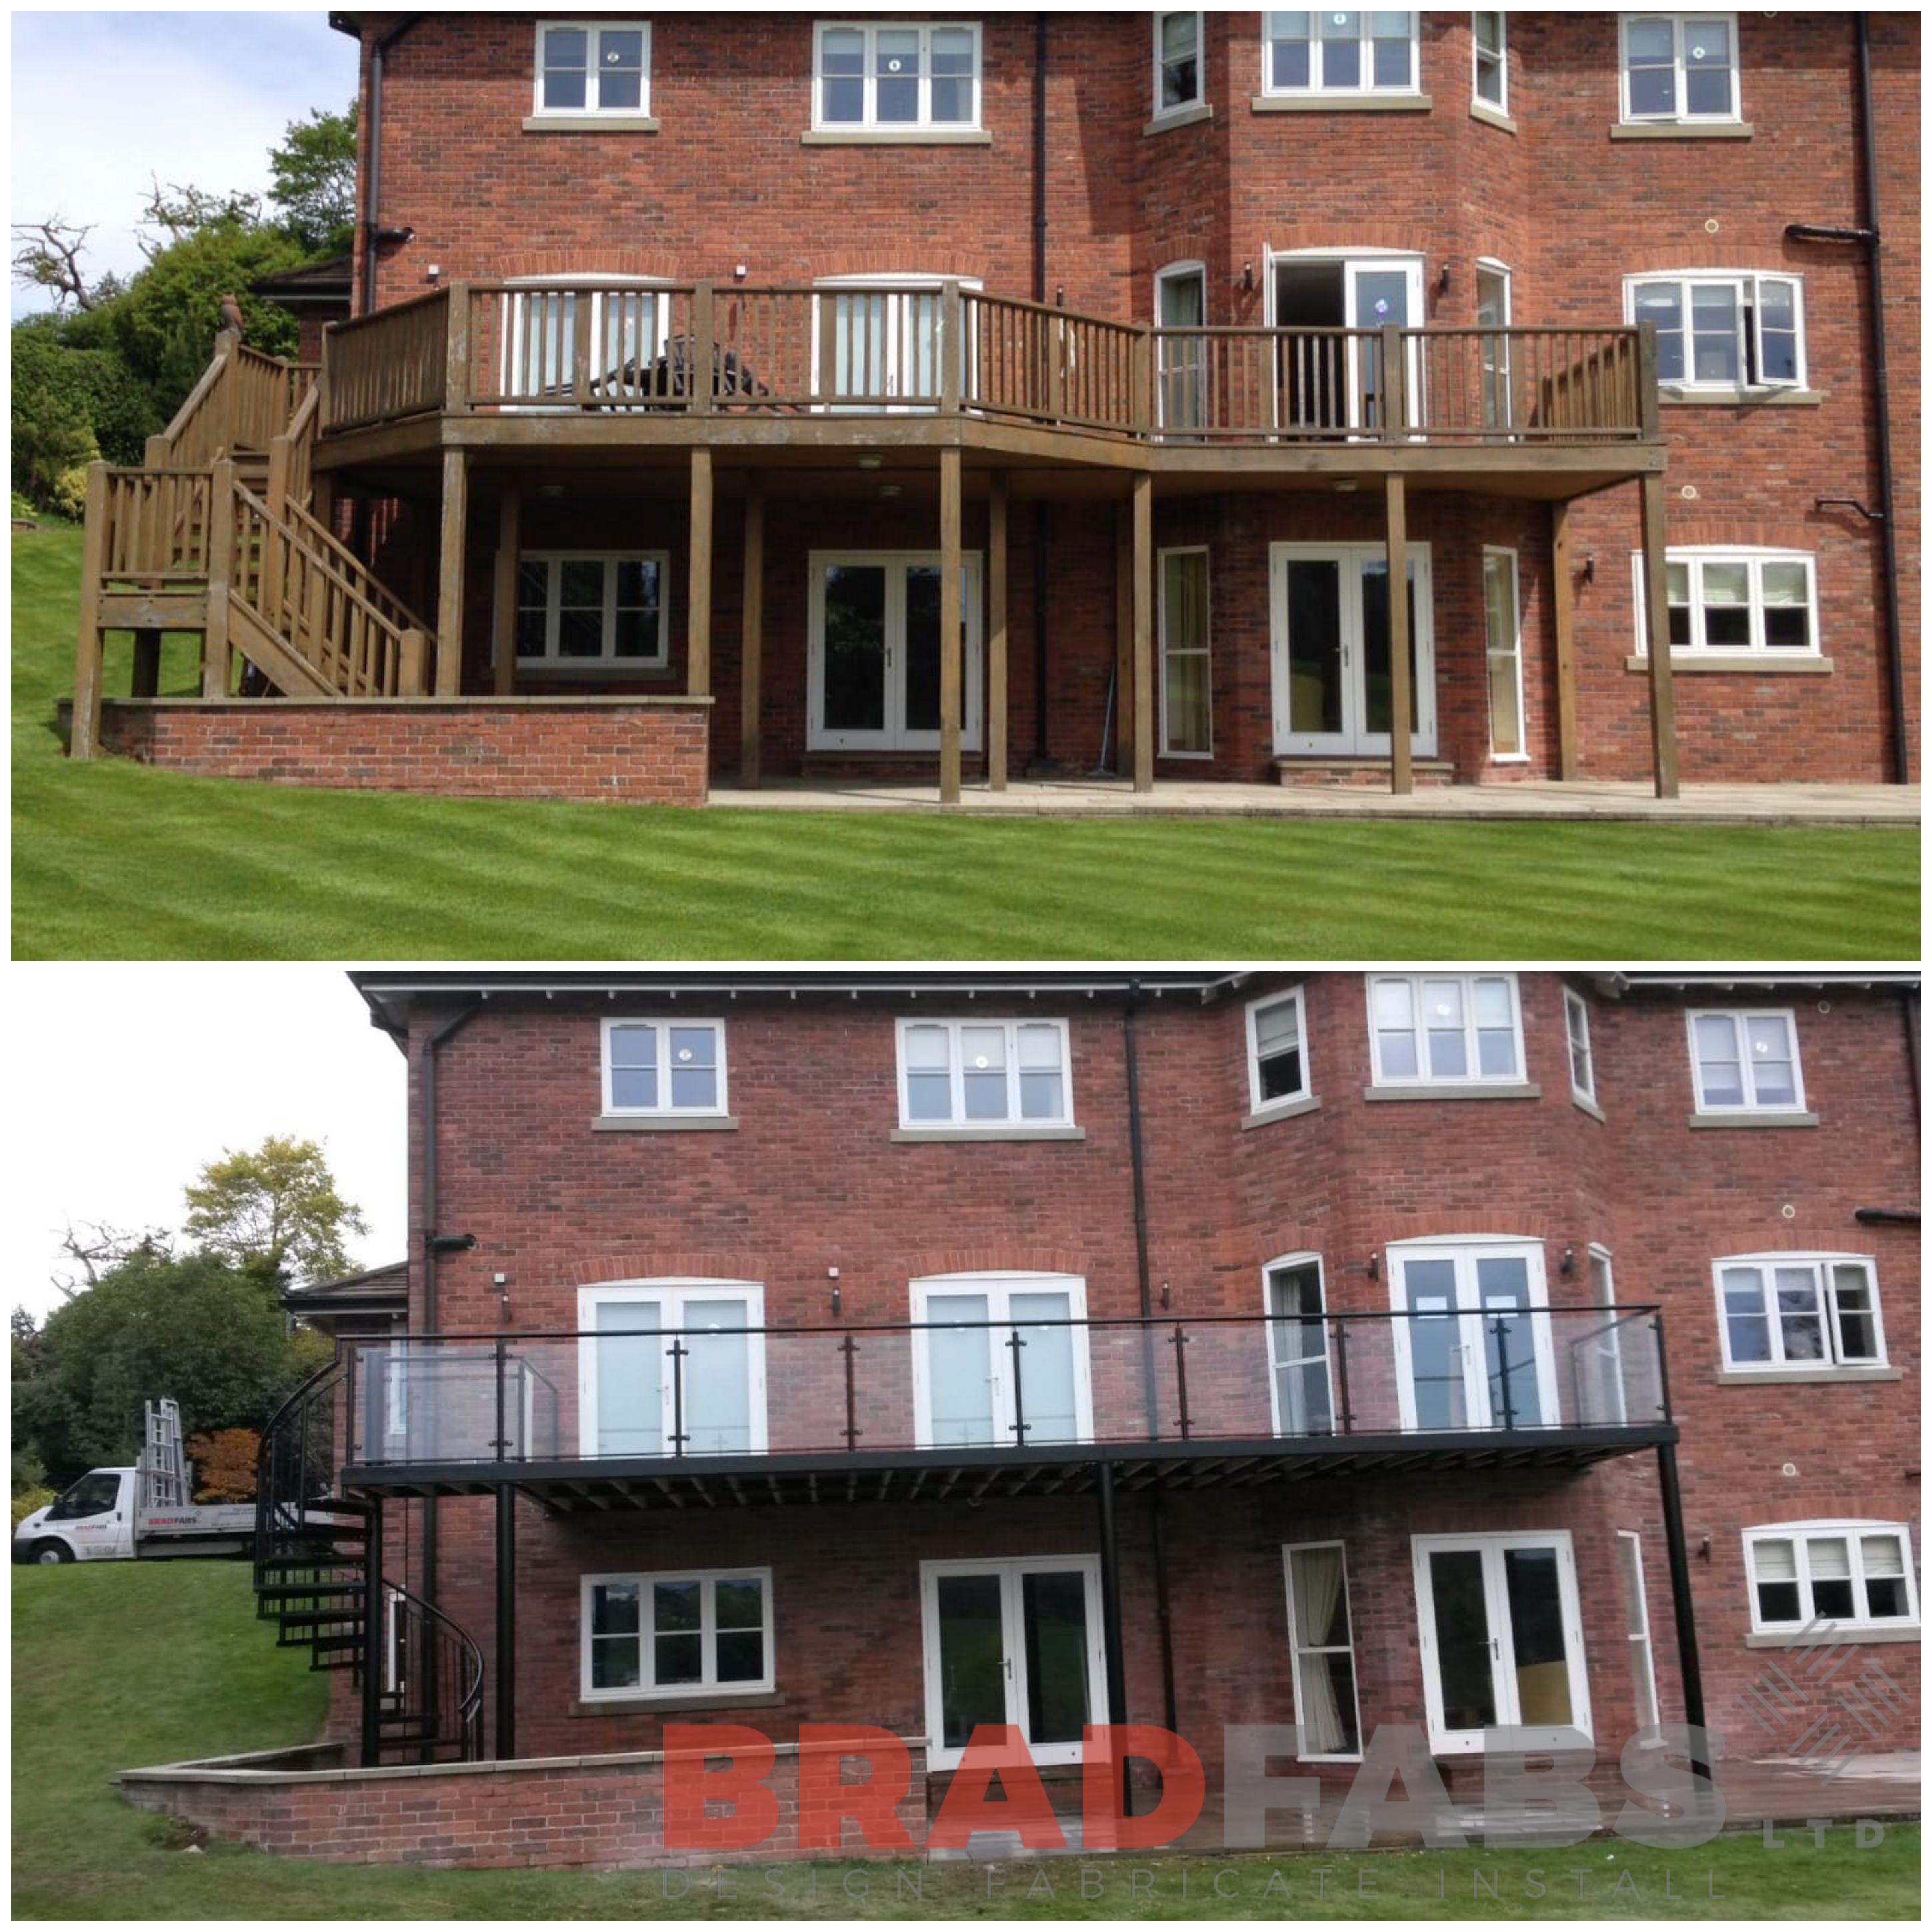 Beautifully modern balcony transformation by Bradfabs UK LTD, infinity glass balustrade with mild steel galvanised and powder coated handrail and spiral staircase at the end